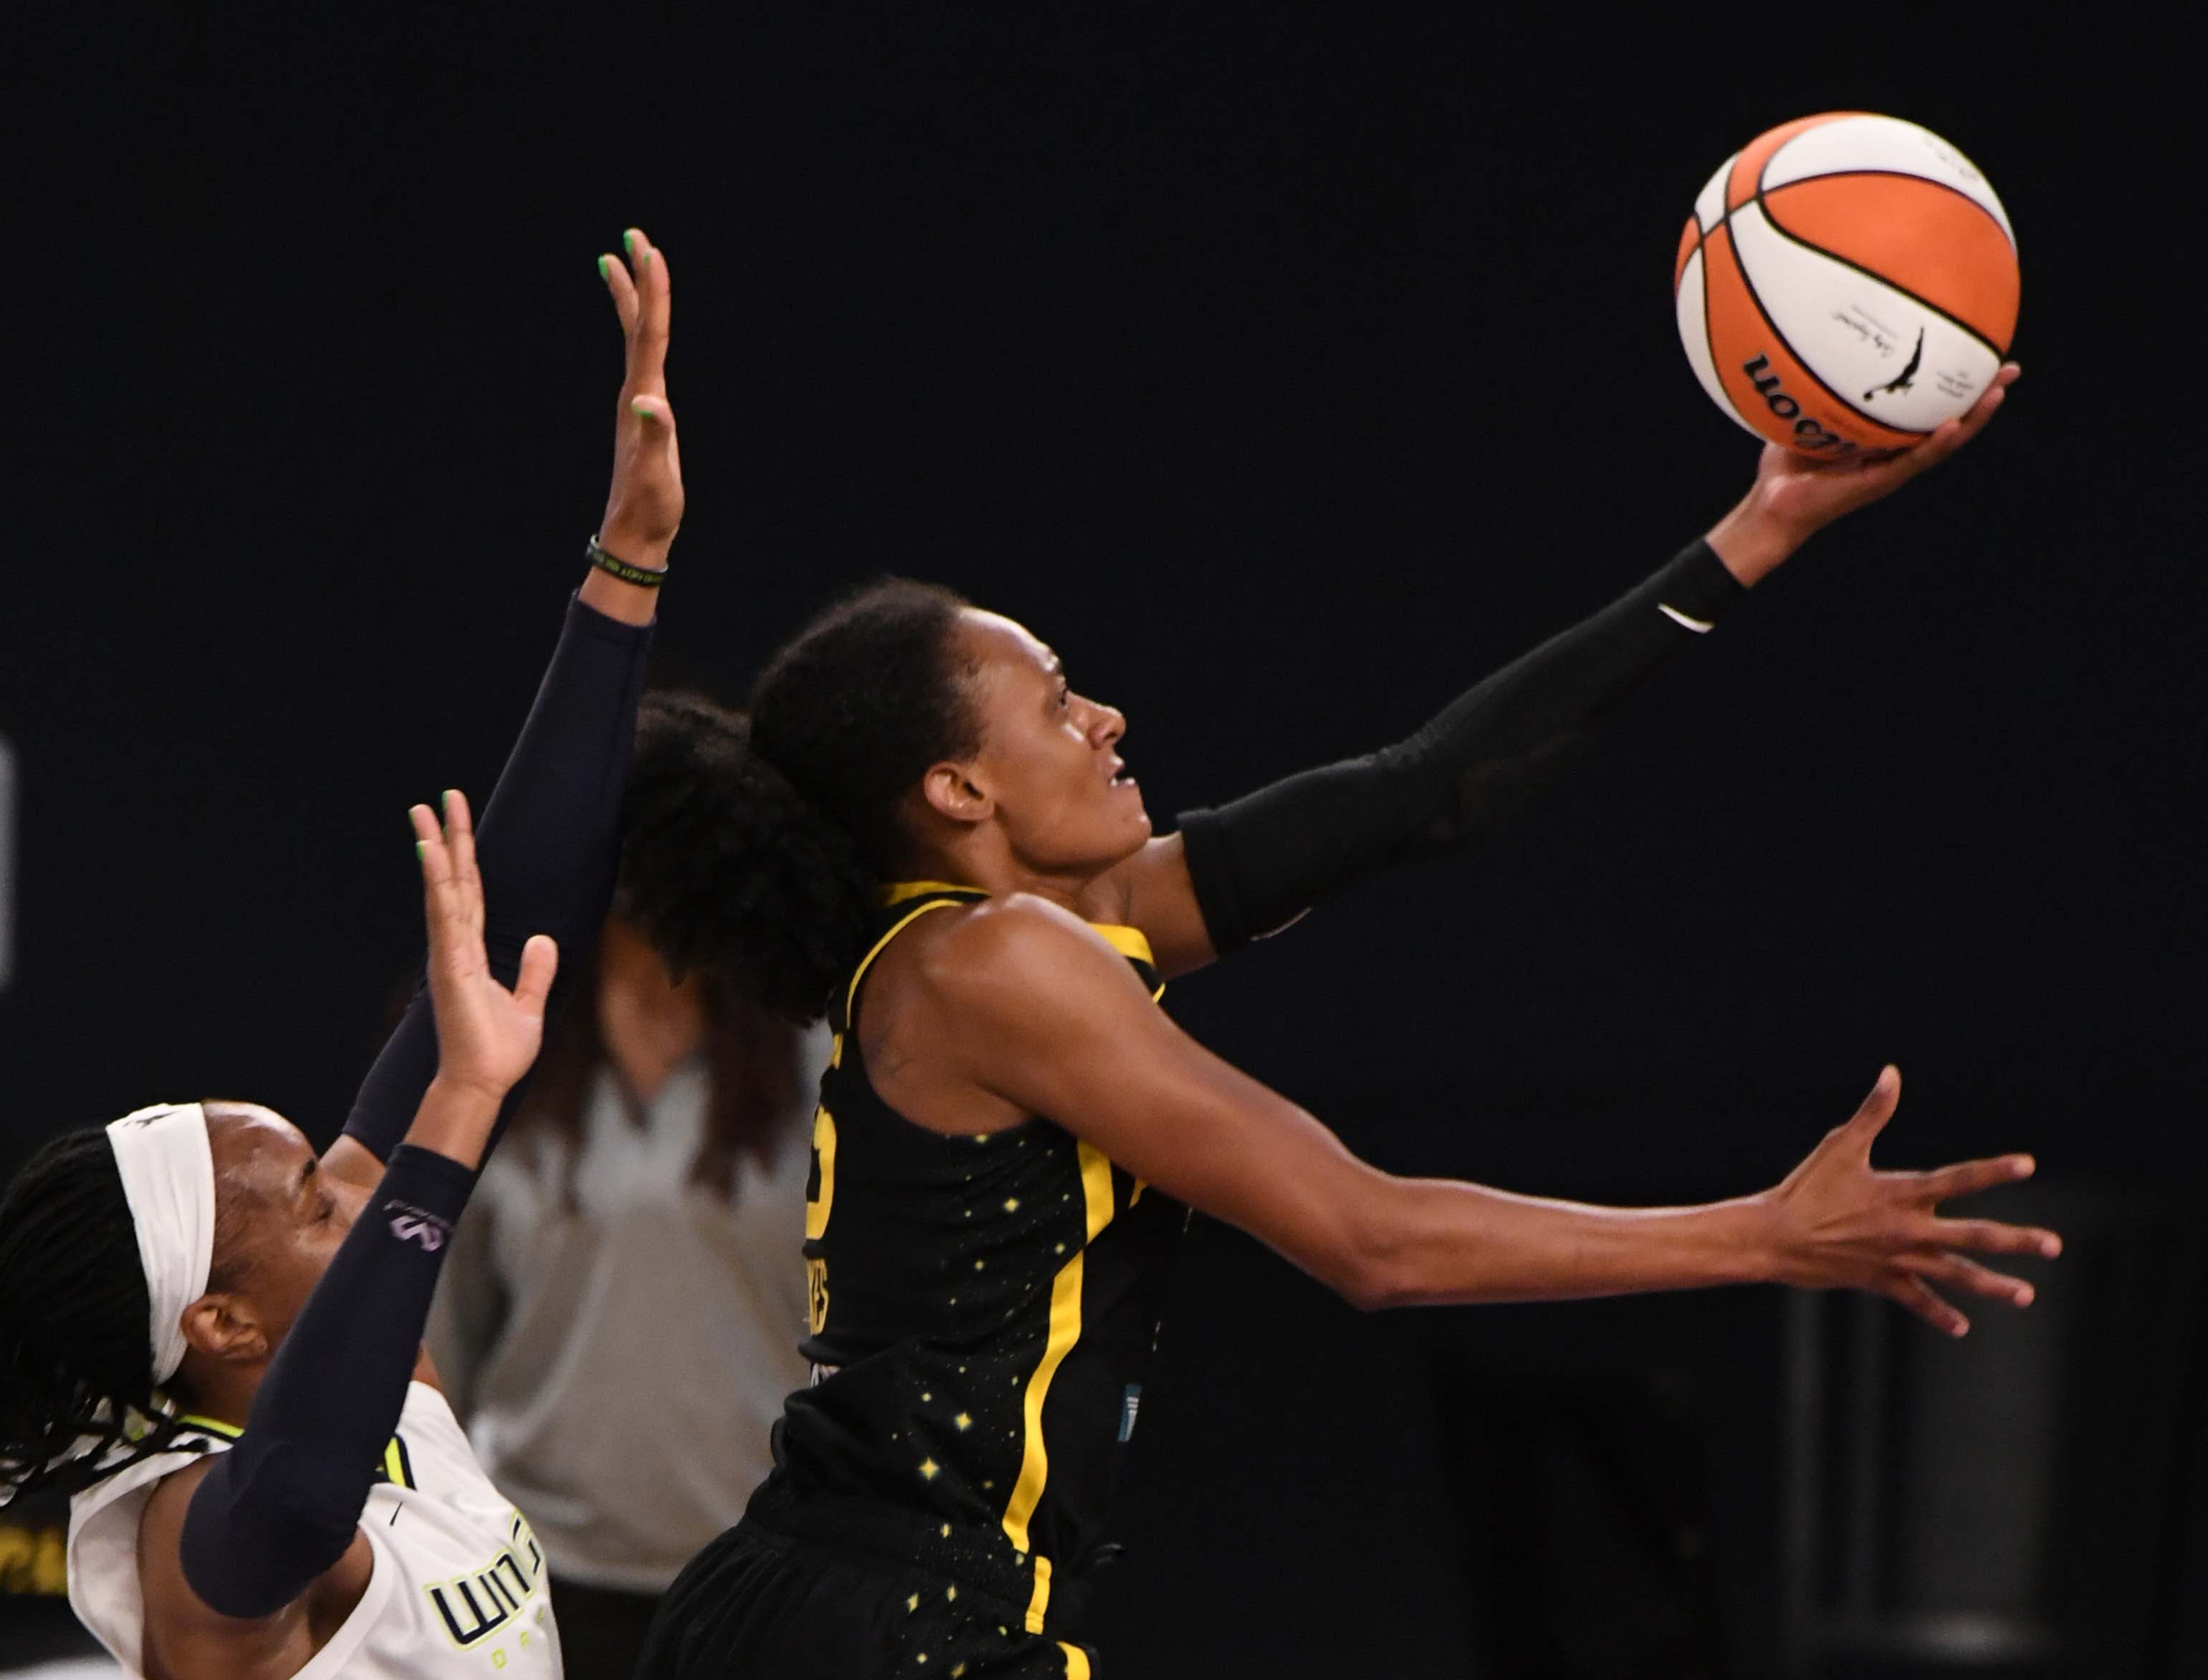 Dallas Wings defeats the Los Angeles Sparks 94-71 during a WNBA basketball game at the Convention Center in Los Angeles.